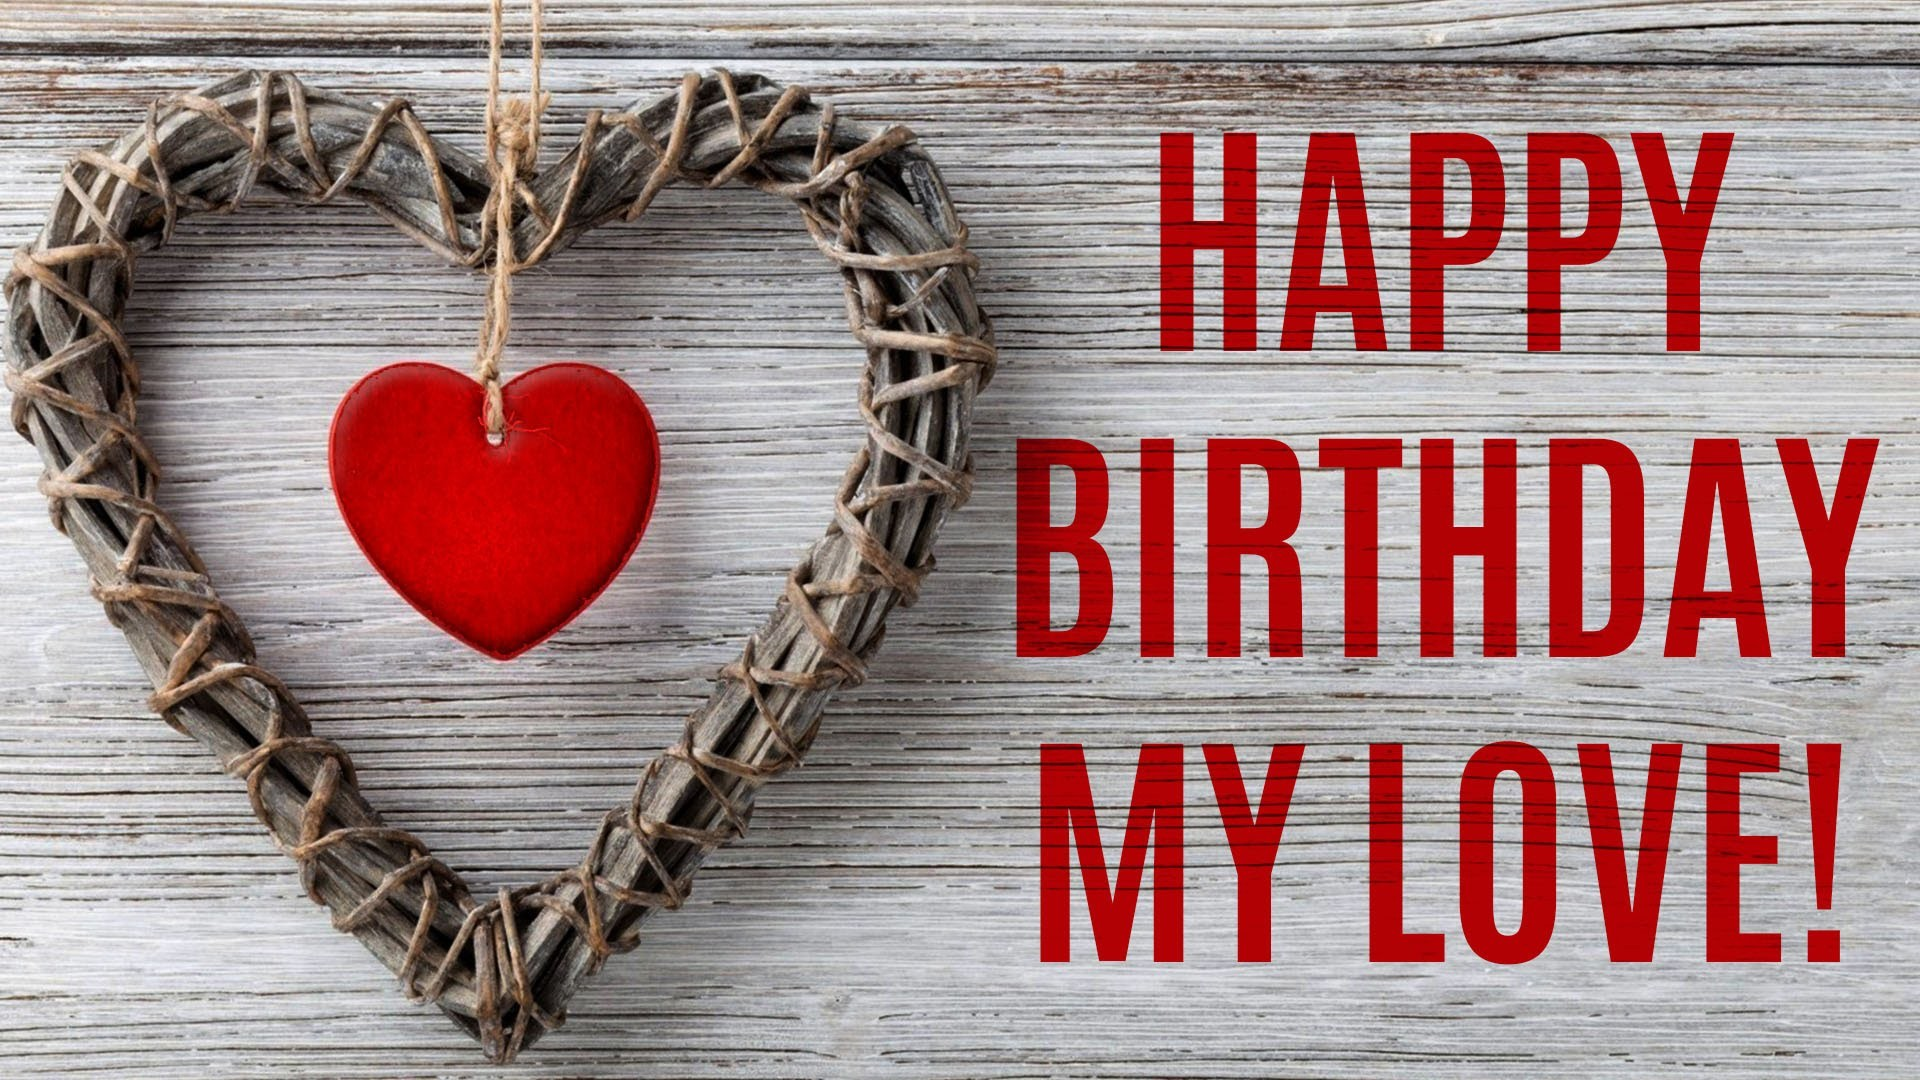 Free Wallpaper Birthday Love : Happy Birthday Love Wallpaper (53+ images)